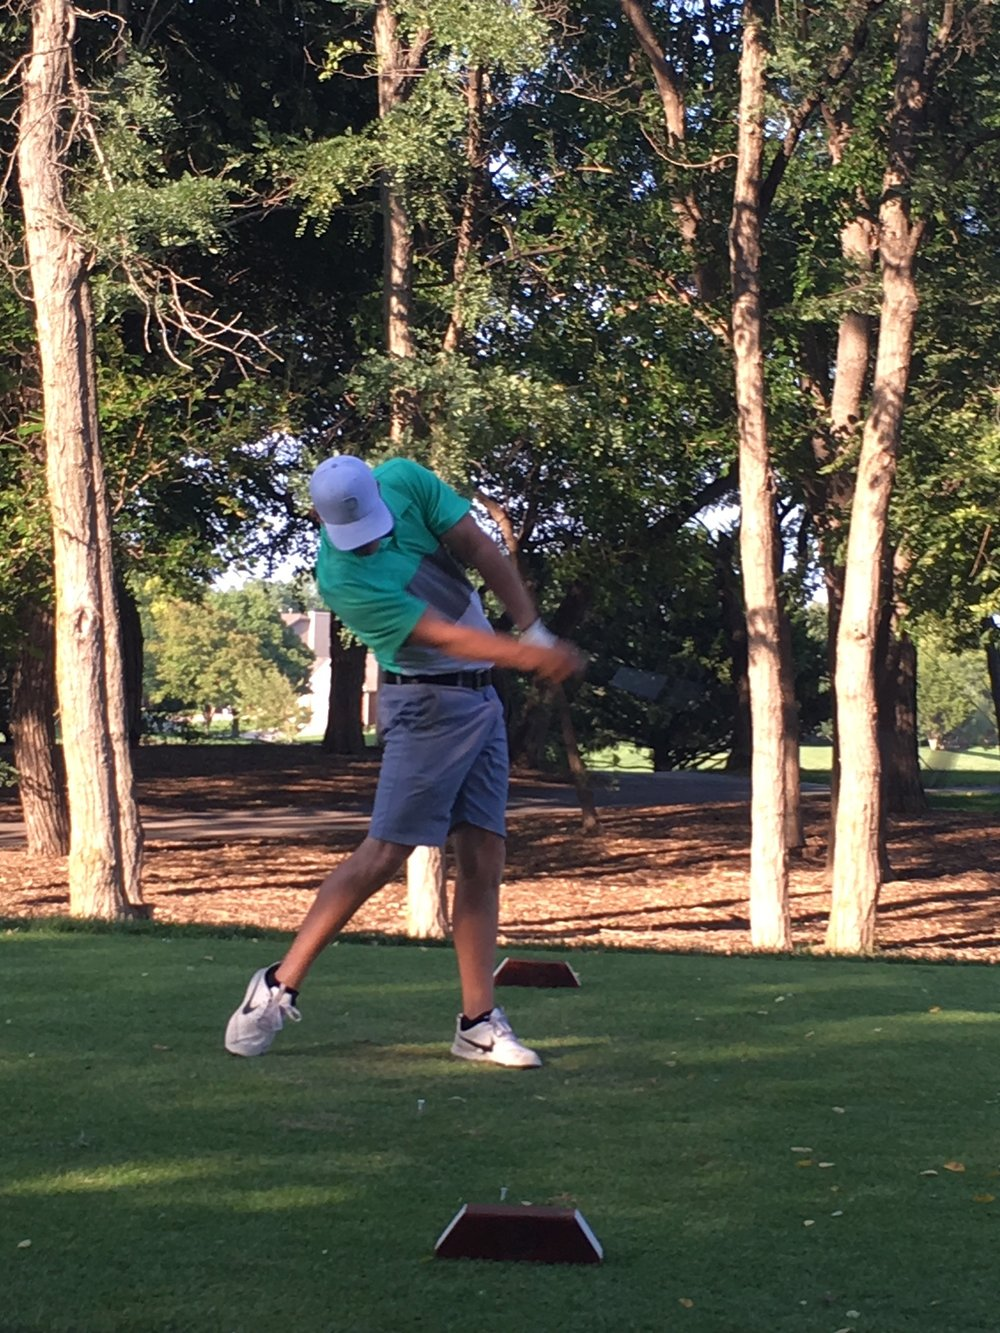 Connor Carman's winning drive in the Long Drive Contest